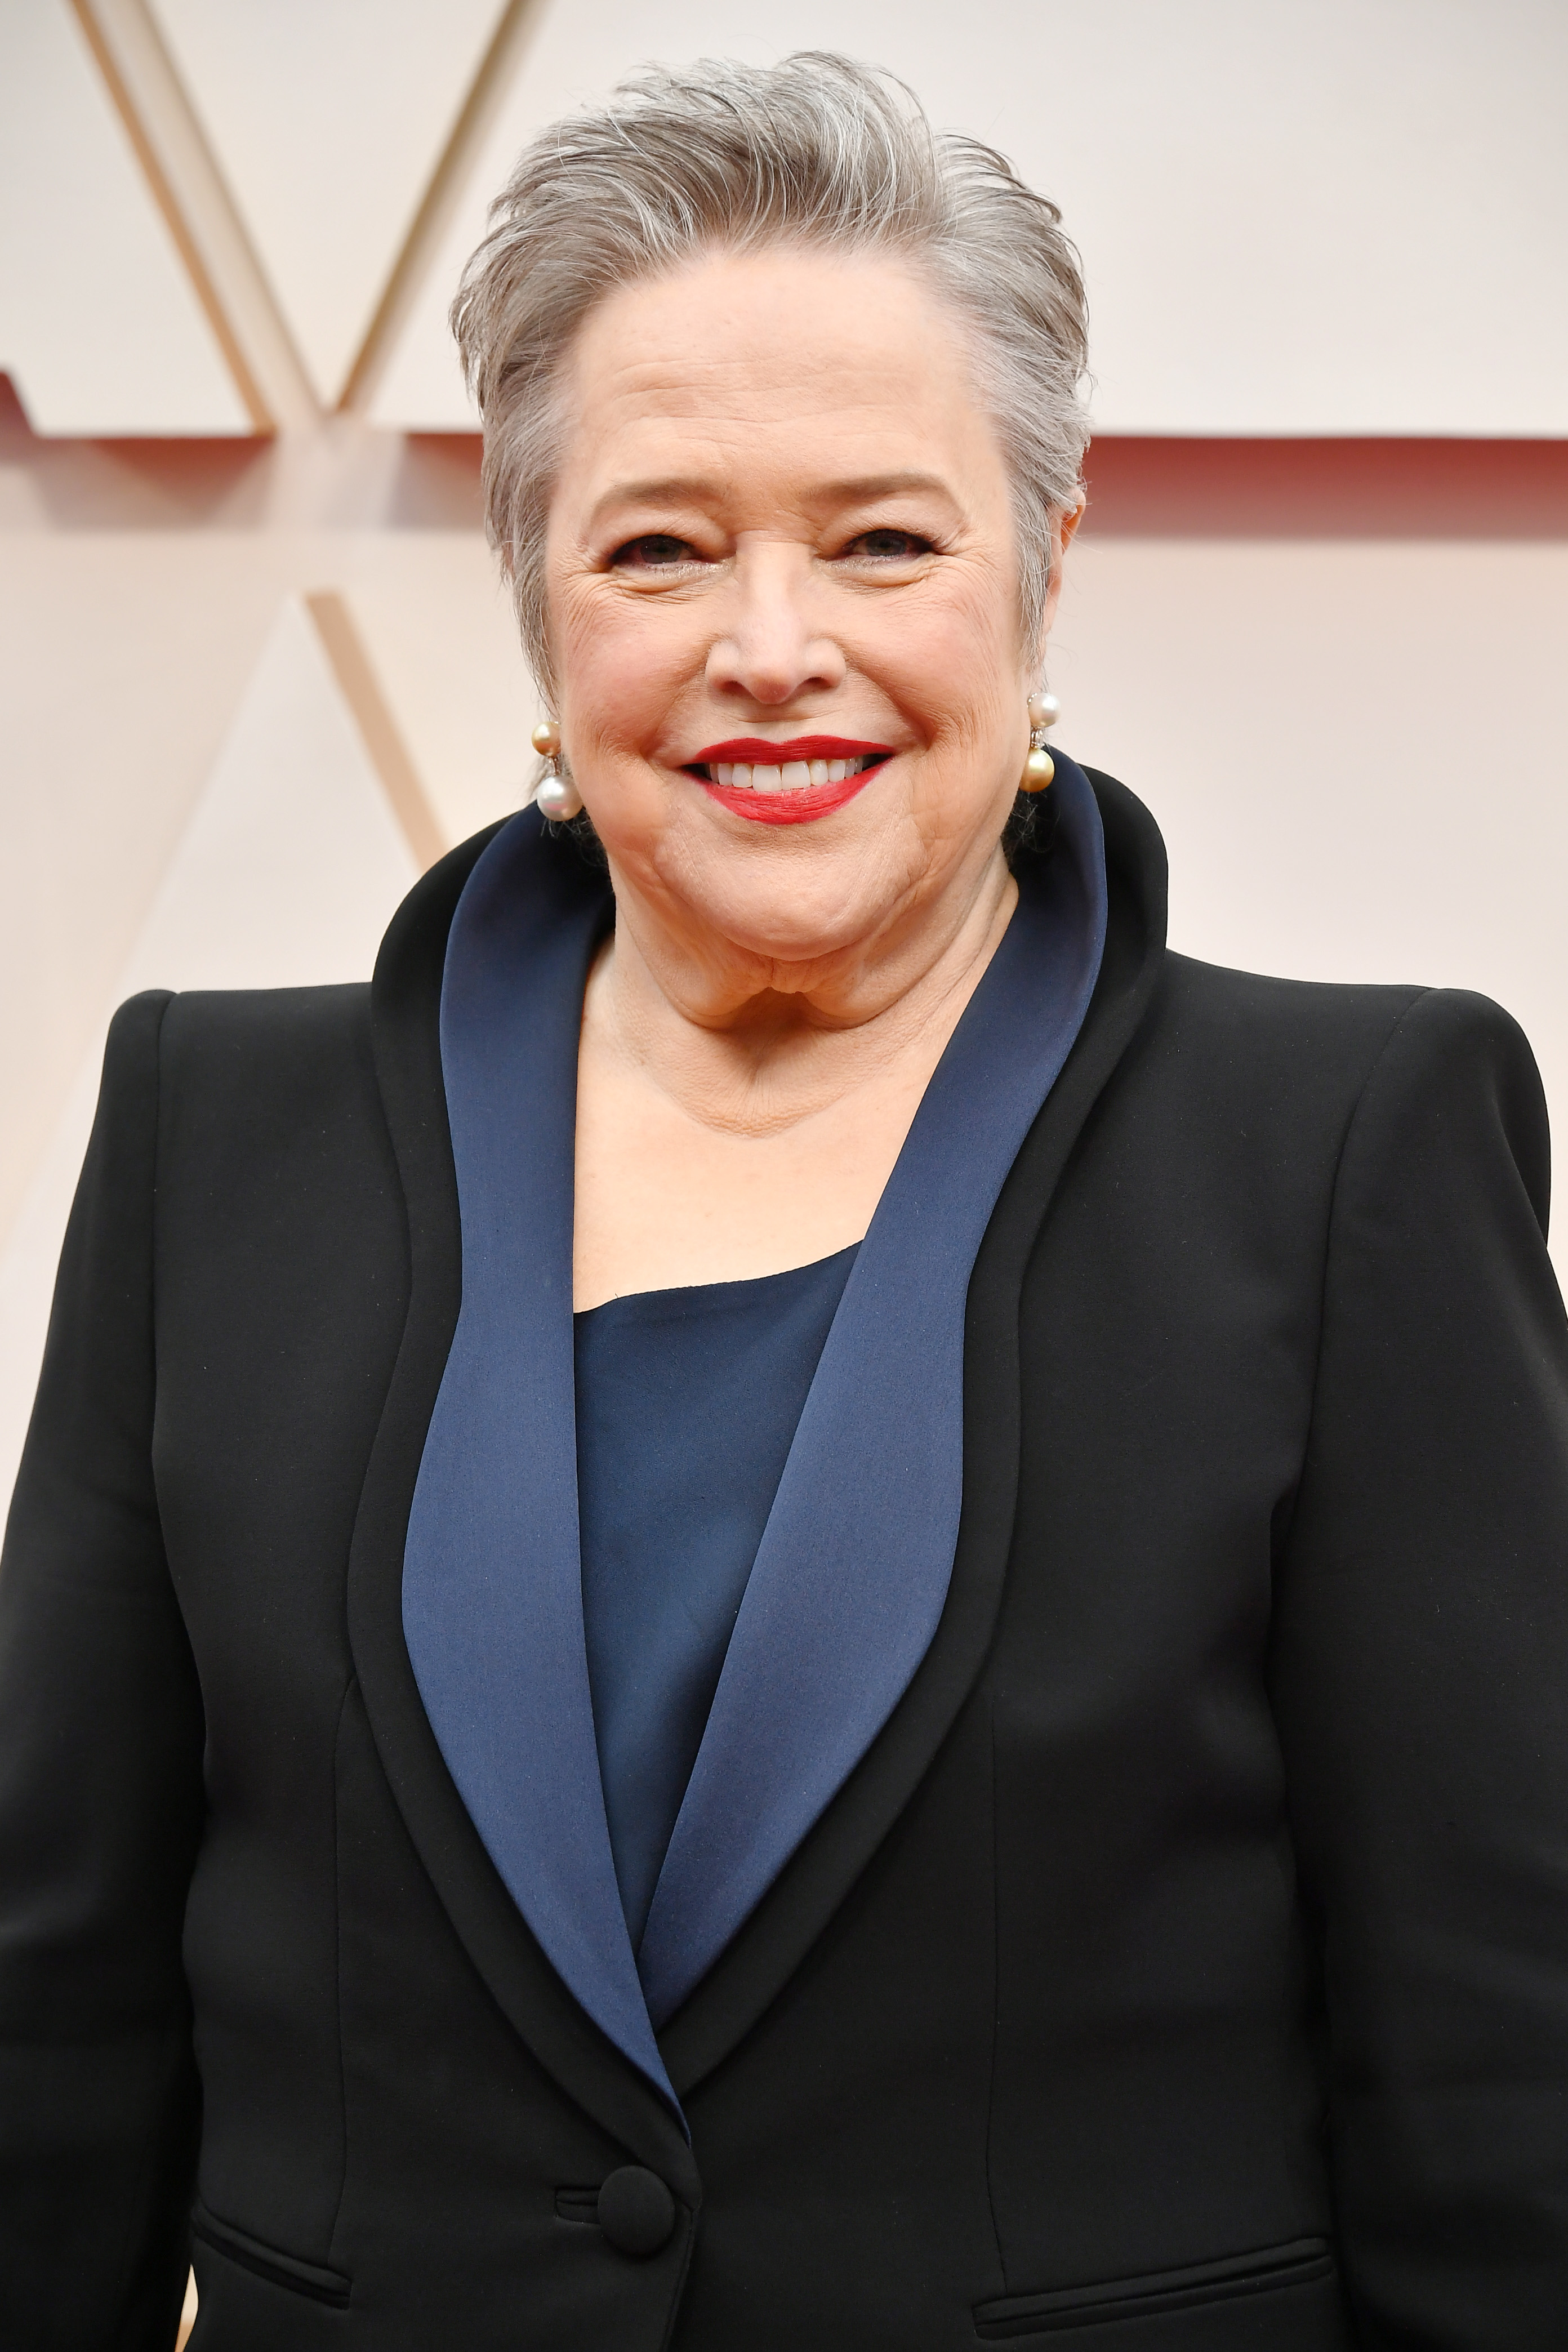 HOLLYWOOD, CALIFORNIA - FEBRUARY 09: Kathy Bates attends the 92nd Annual Academy Awards at Hollywood and Highland on February 09, 2020 in Hollywood, California. (Photo by Amy Sussman/Getty Images)